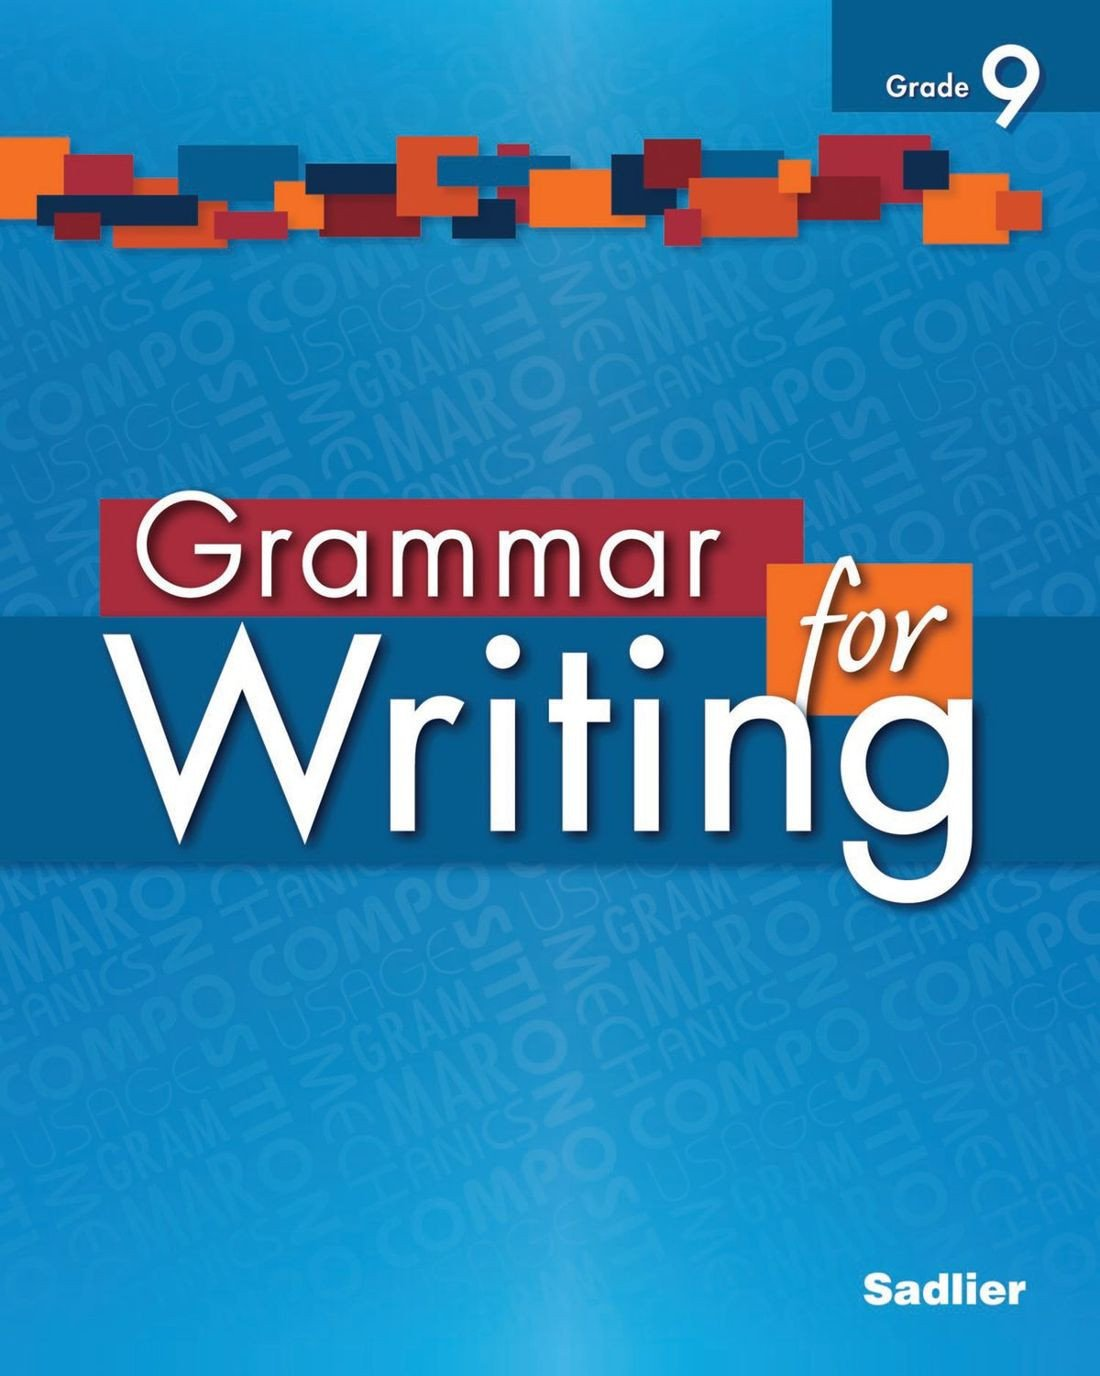 9th Grade Grammar Worksheets Pdf Grammar for Writing Level Blue Grade 9 Student Edition